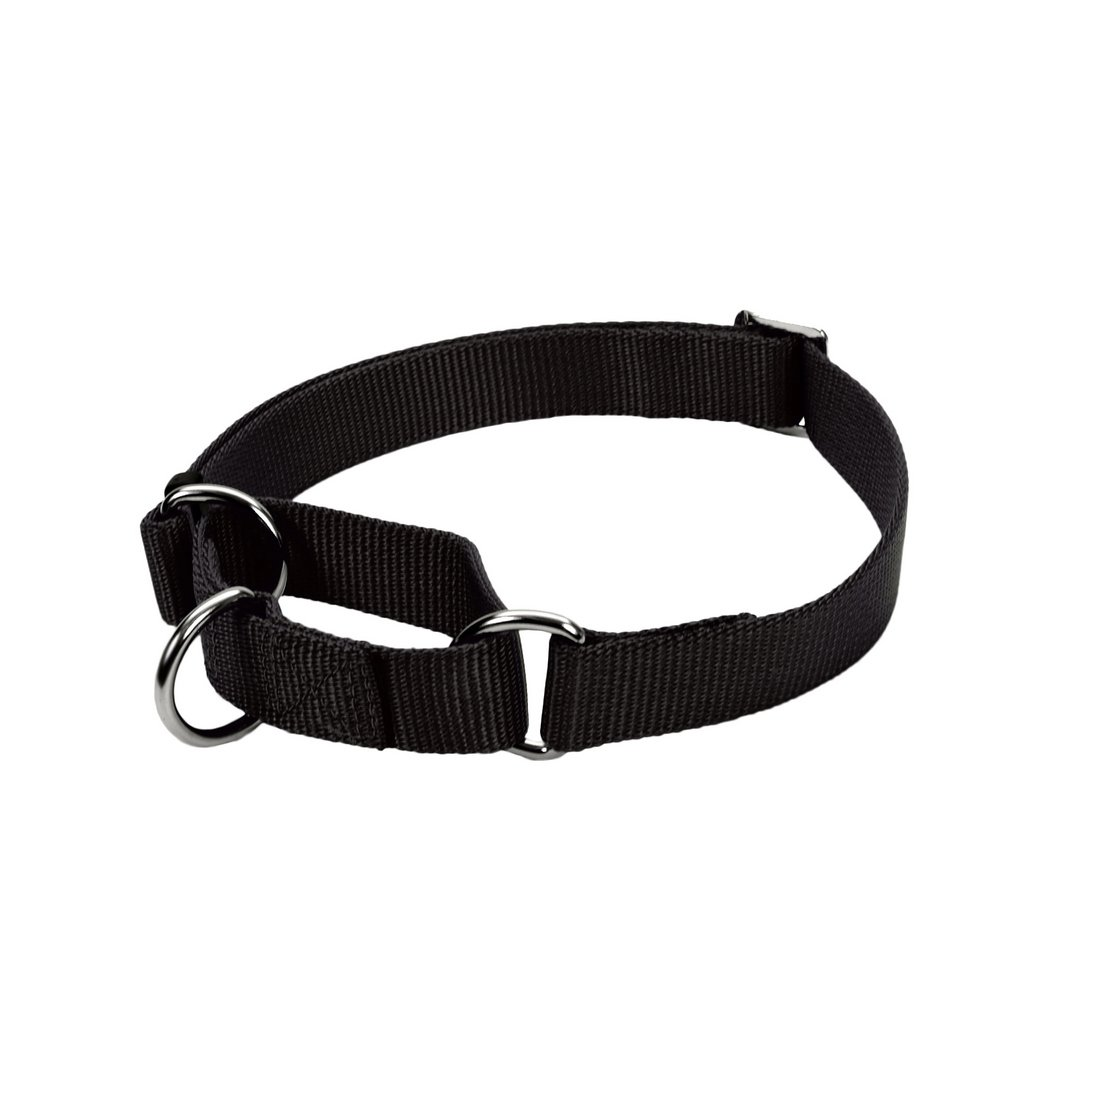 hf-collar-martingale-collar-black